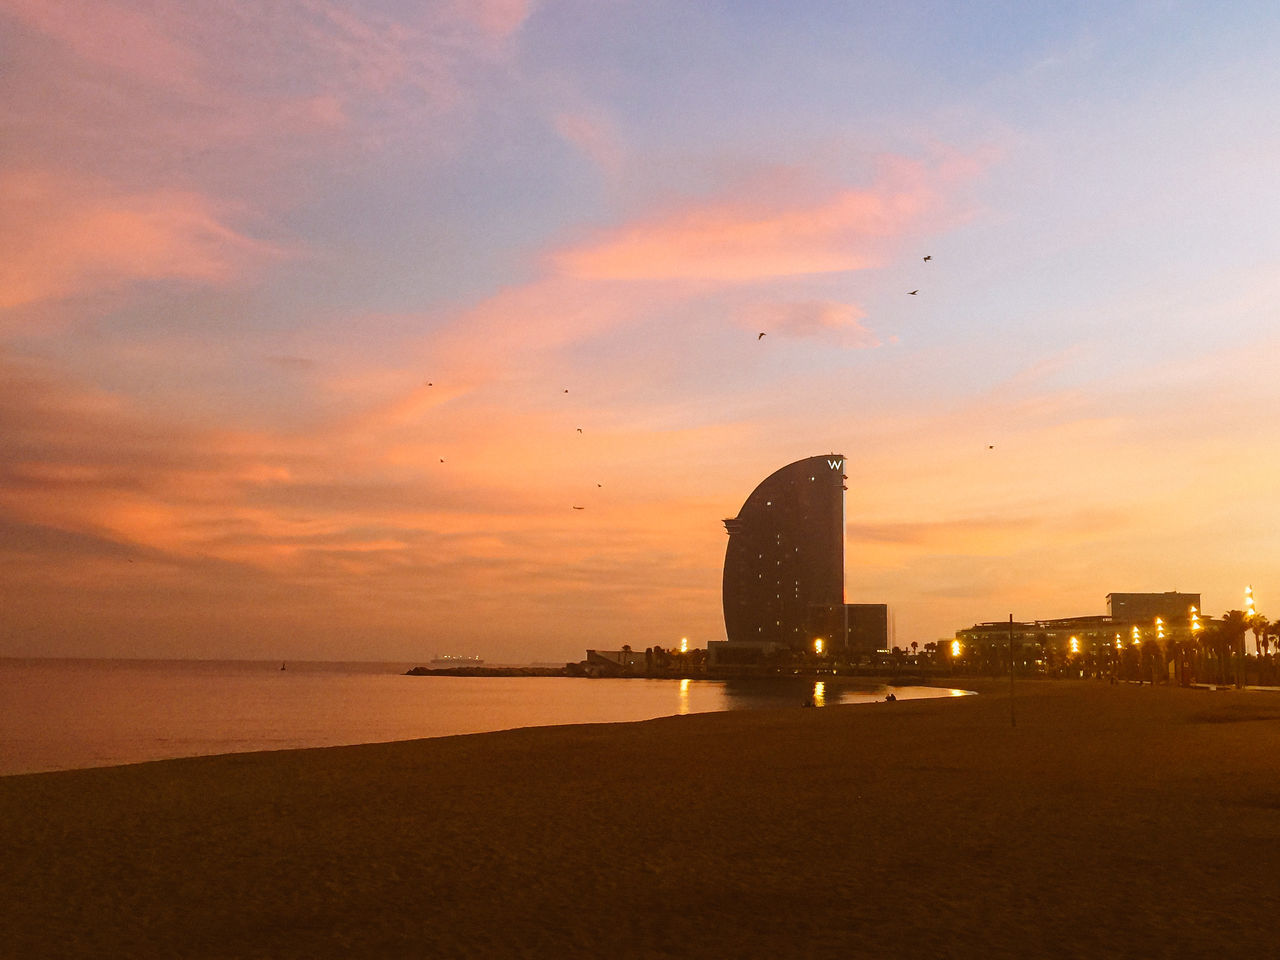 sunset, architecture, built structure, sea, sky, building exterior, travel destinations, silhouette, cloud - sky, water, no people, skyscraper, nature, outdoors, city, beach, modern, scenics, horizon over water, beauty in nature, cityscape, day